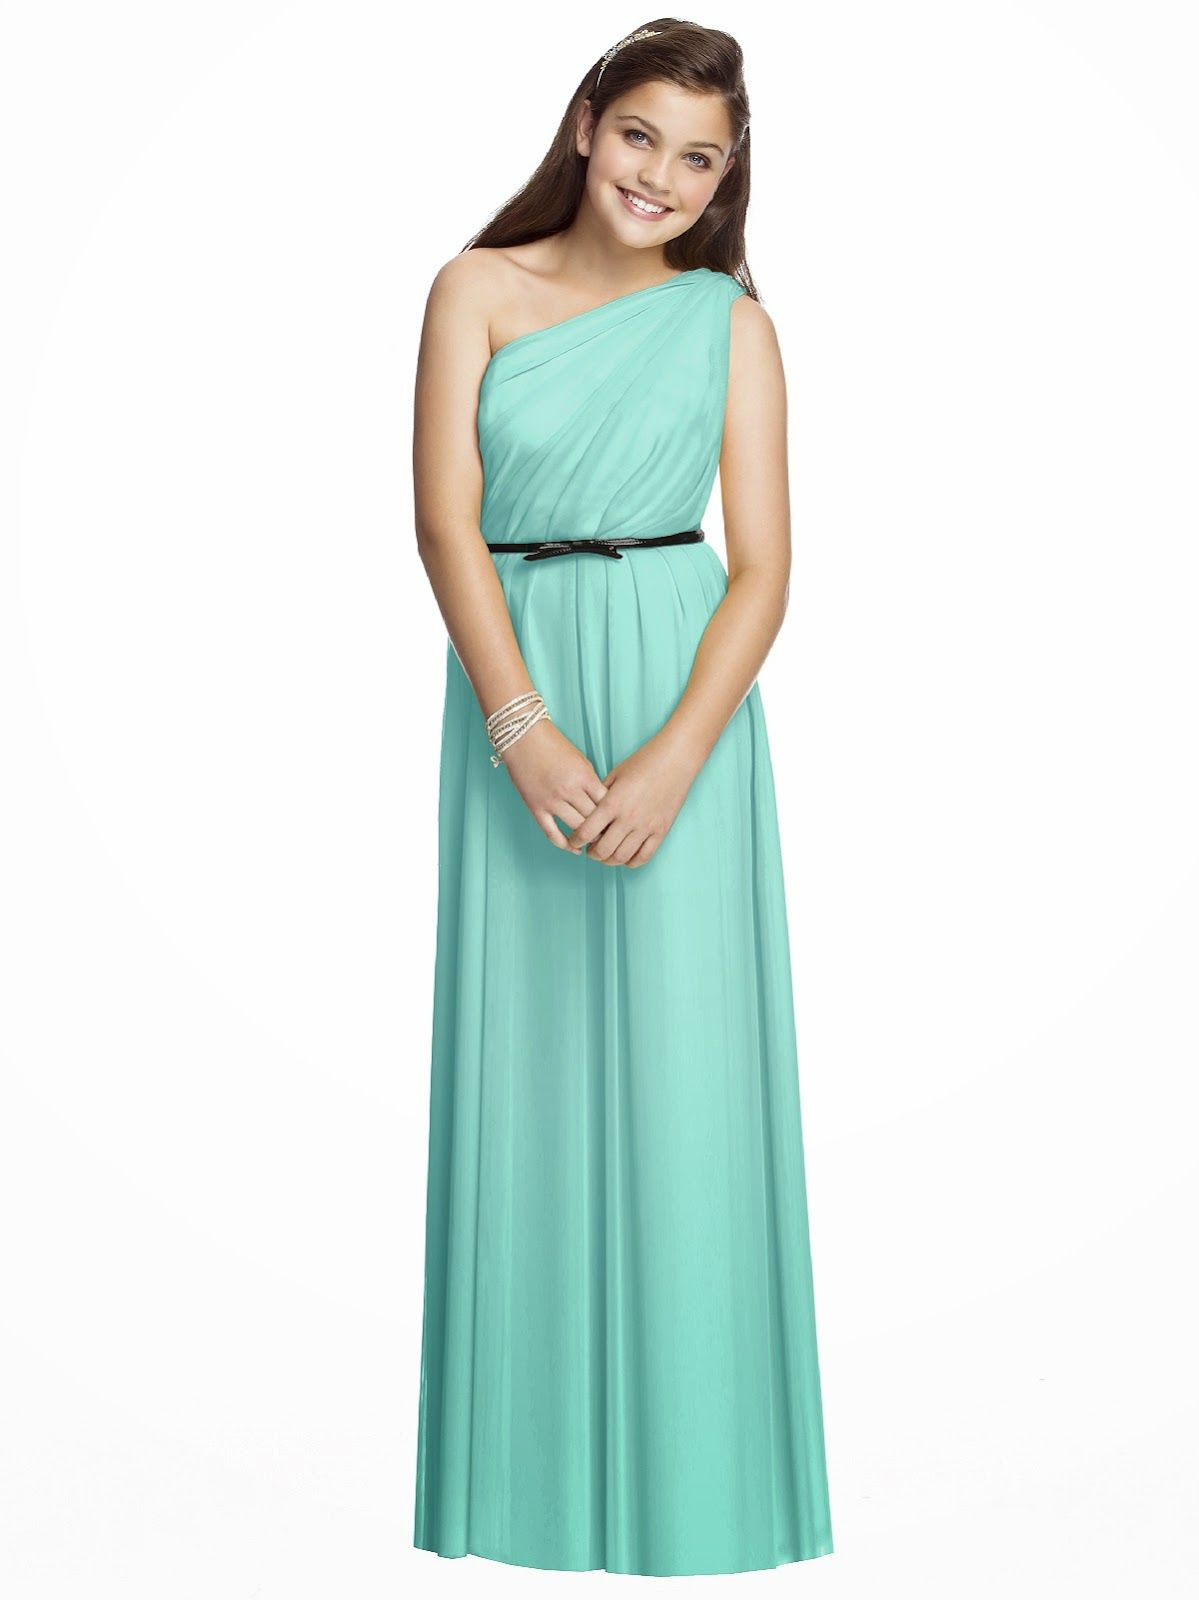 Macy S Junior Bridesmaid Dresses